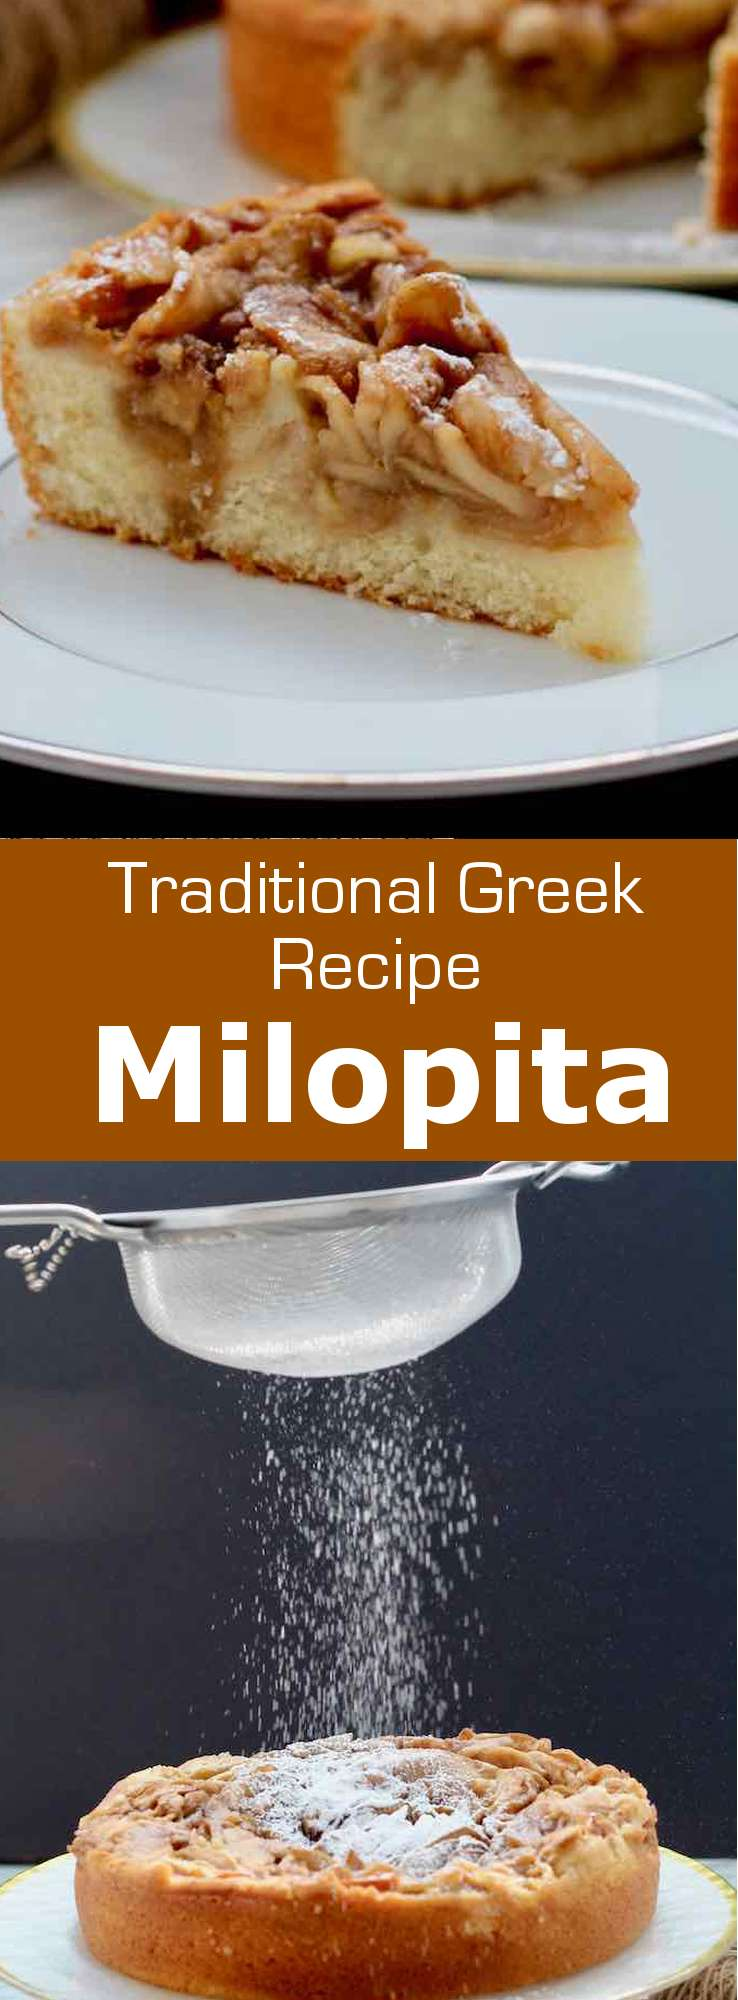 Milopita (μηλόπιτα) is the traditional Greek version of apple pie with cinnamon, halfway between a soft cake dough and a pastry. #Greece #GreekCuisine #GreekFood #GreekRecipe #MediterraneanCuisine #WorldCuisine #196flavors